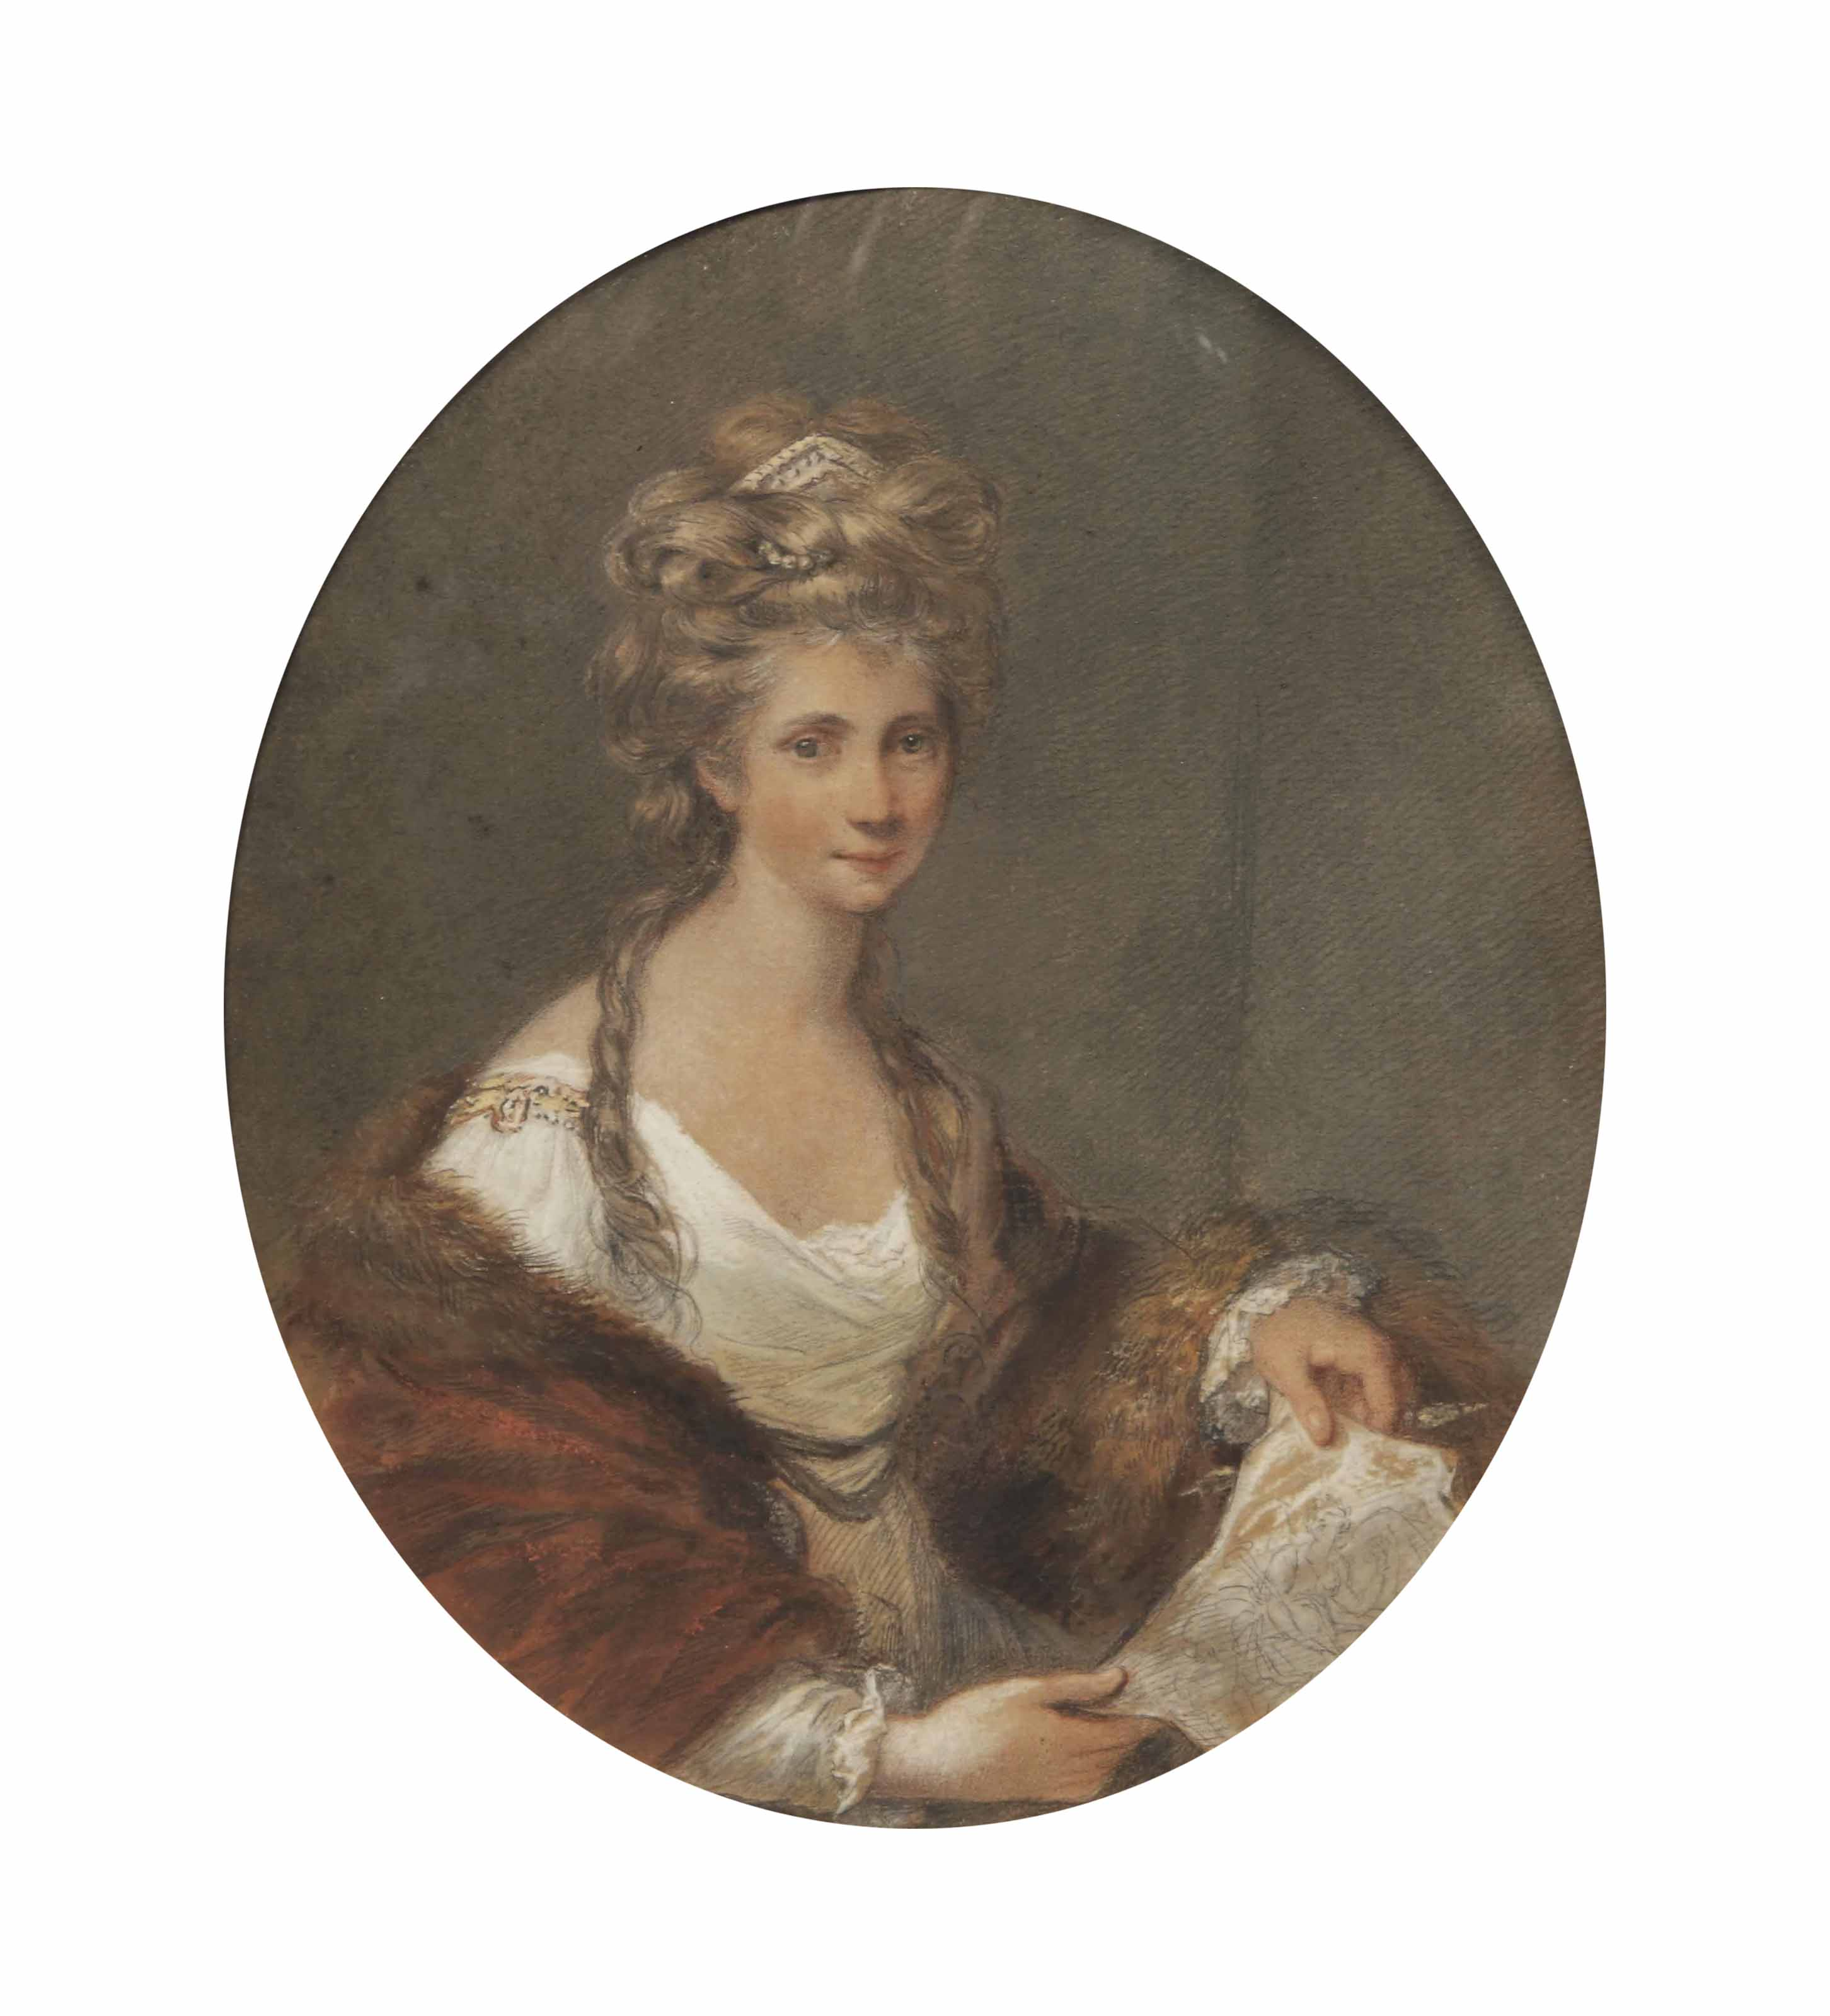 Portrait of Angelica Kauffmann, half-length, in a white dress with a red, fur-lined mantle, holding a sketch